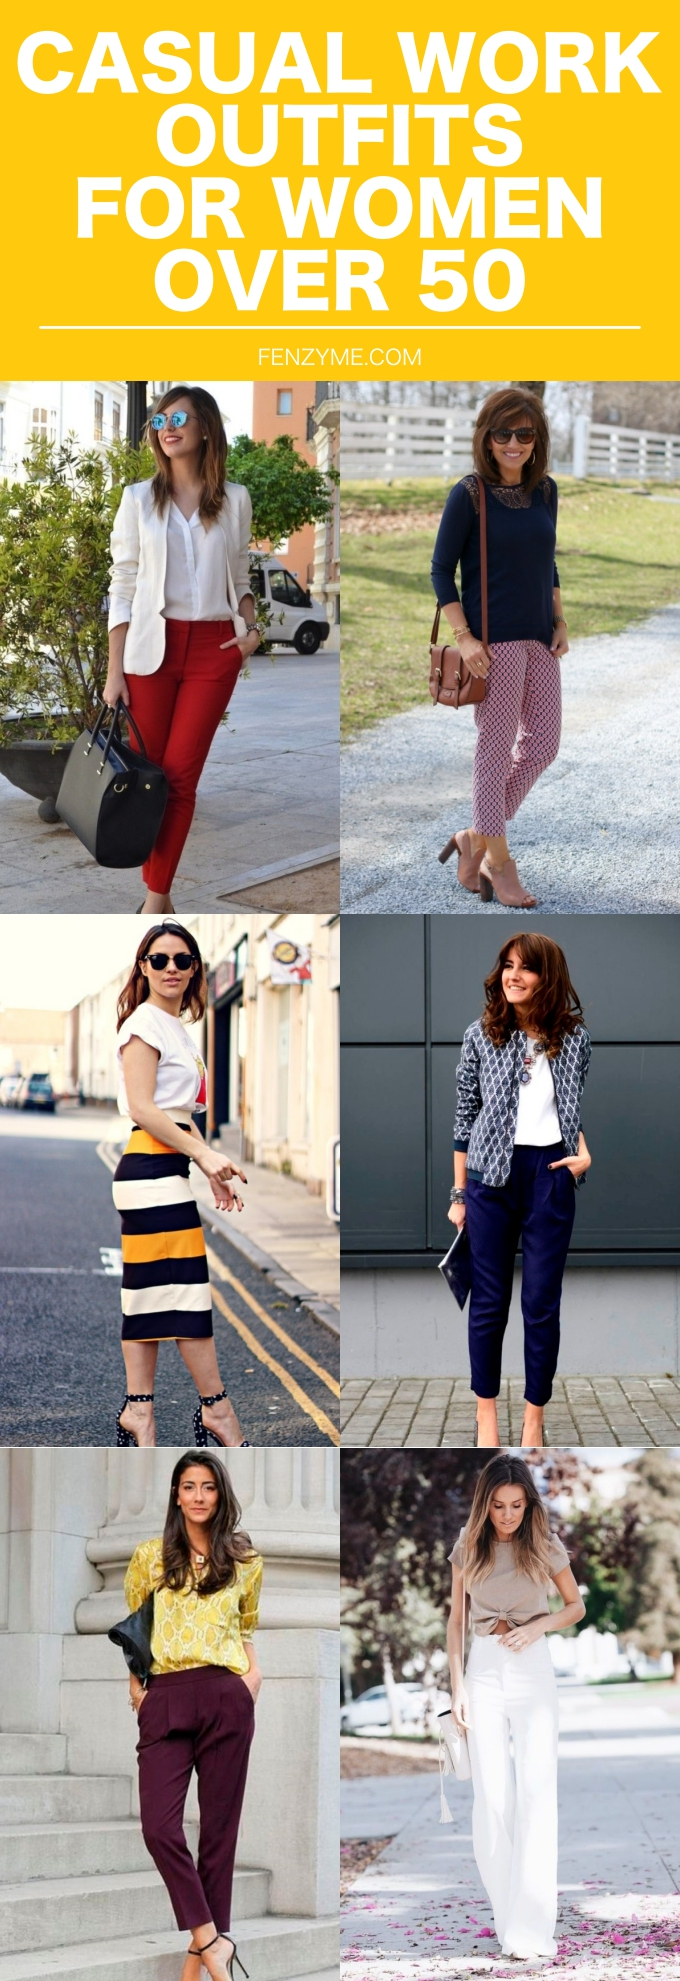 CASUAL WORK OUTFITS FOR WOMEN OVER 50